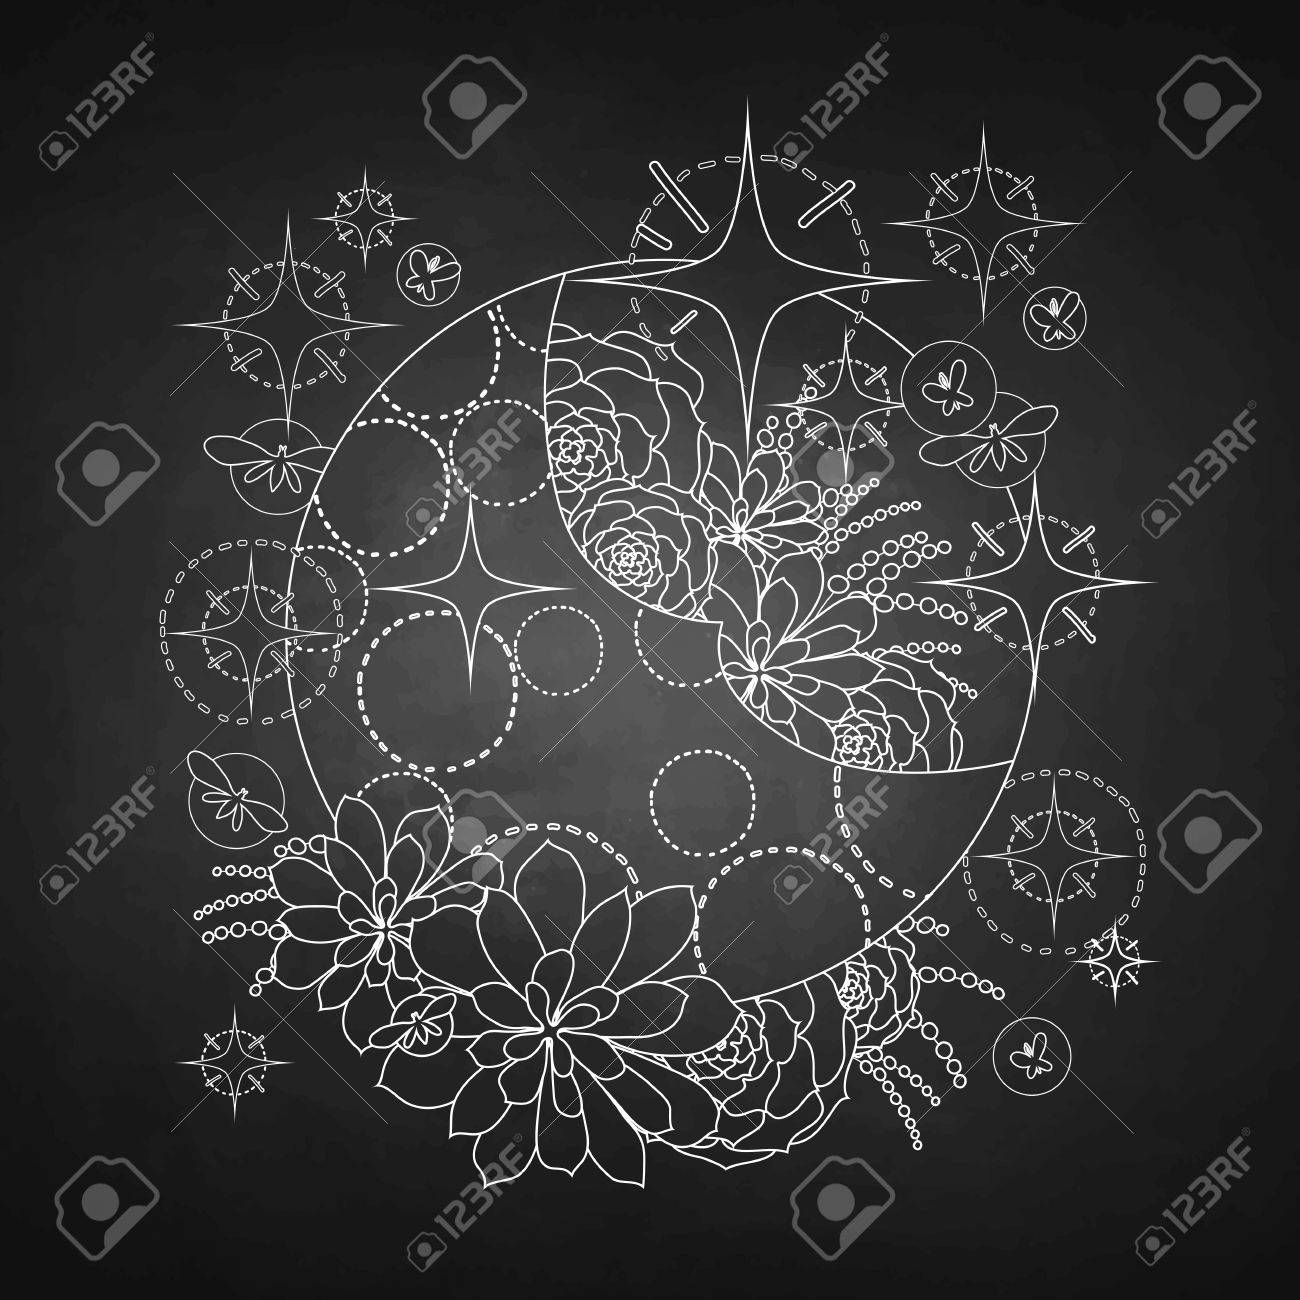 Graphic Moon With Succulent Design Among Stars And Glowing Butterflies Royalty Free Cliparts Vectors And Stock Illustration Image 58553341